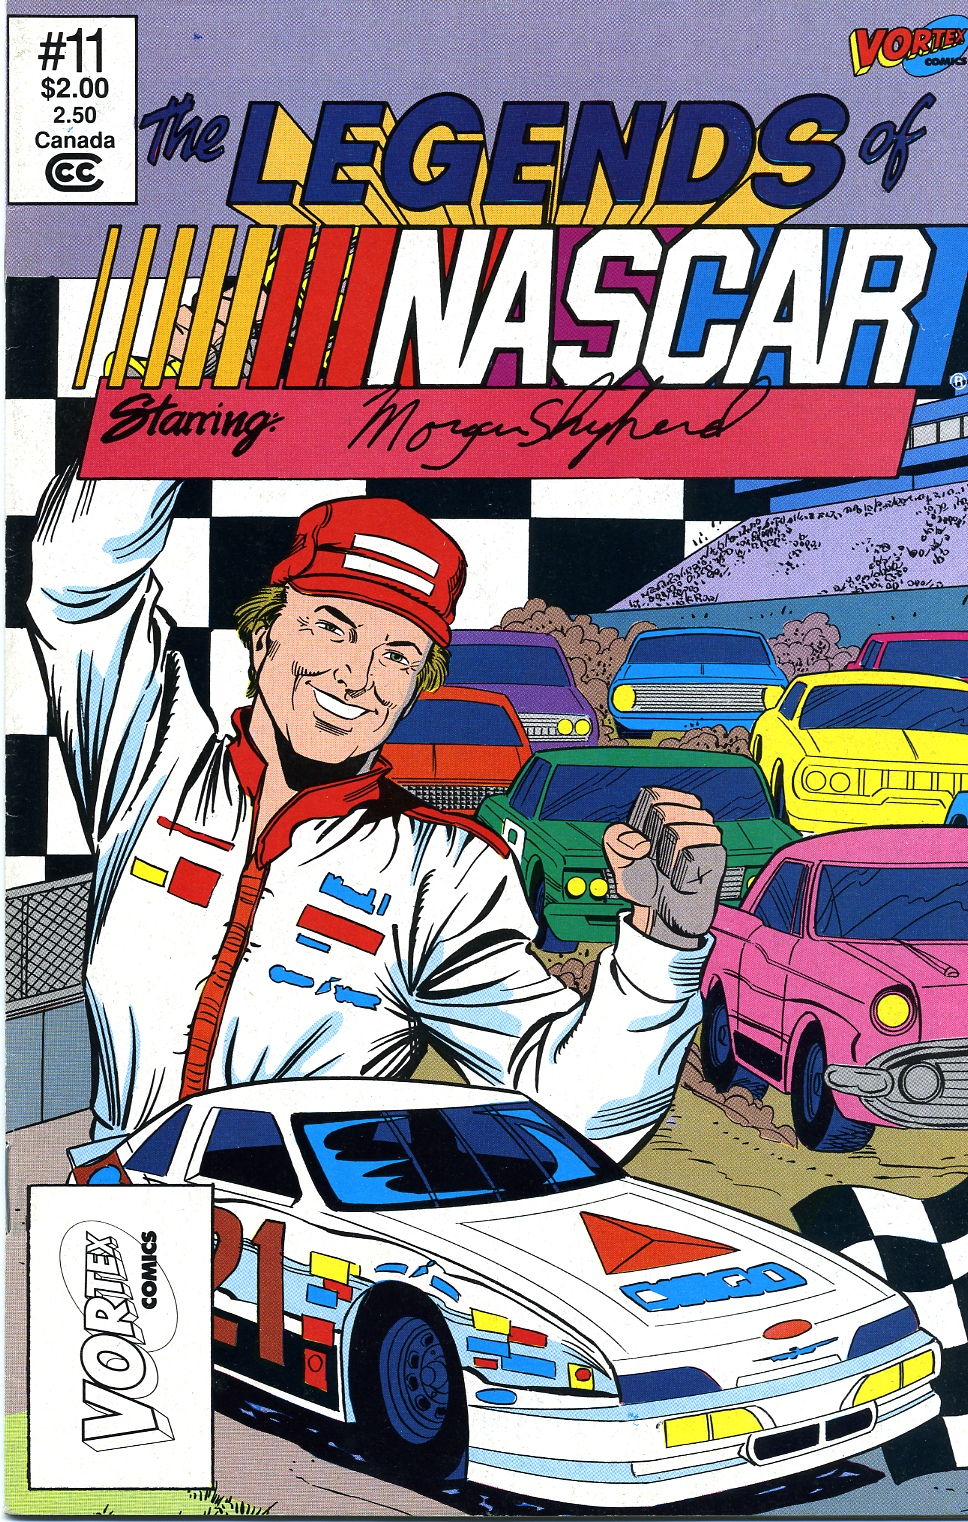 Photo of Morgan Shepherd Comic; Part 1